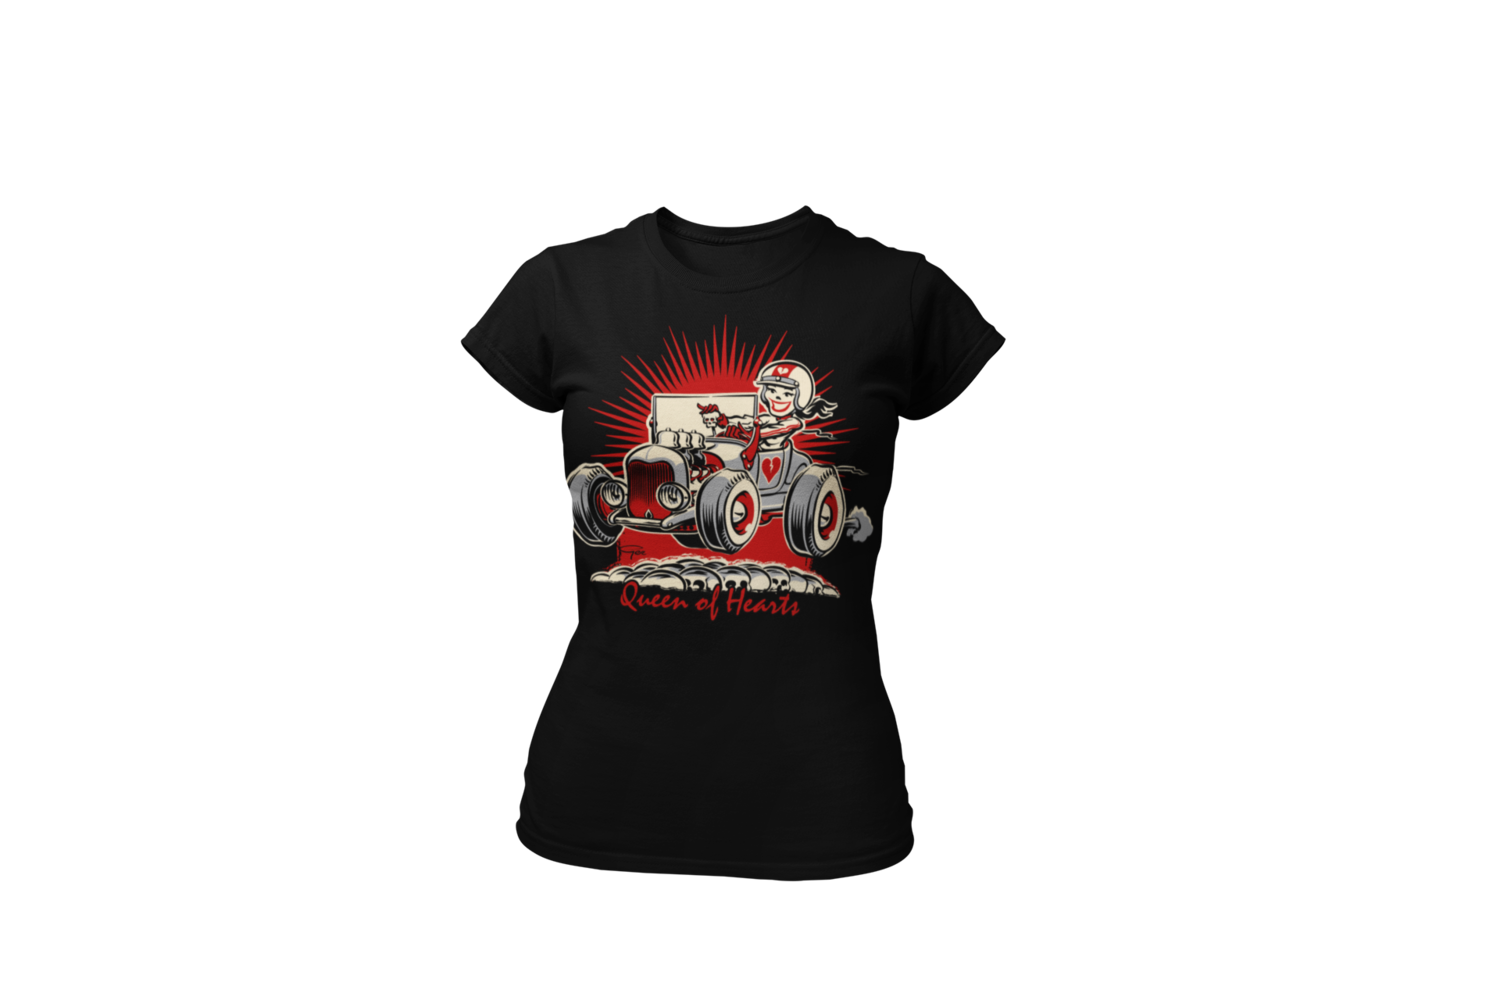 """QUEEN OF HEARTS T-SHIRT WOMAN by Ger """"Dutch Courage"""" Peters artwork"""